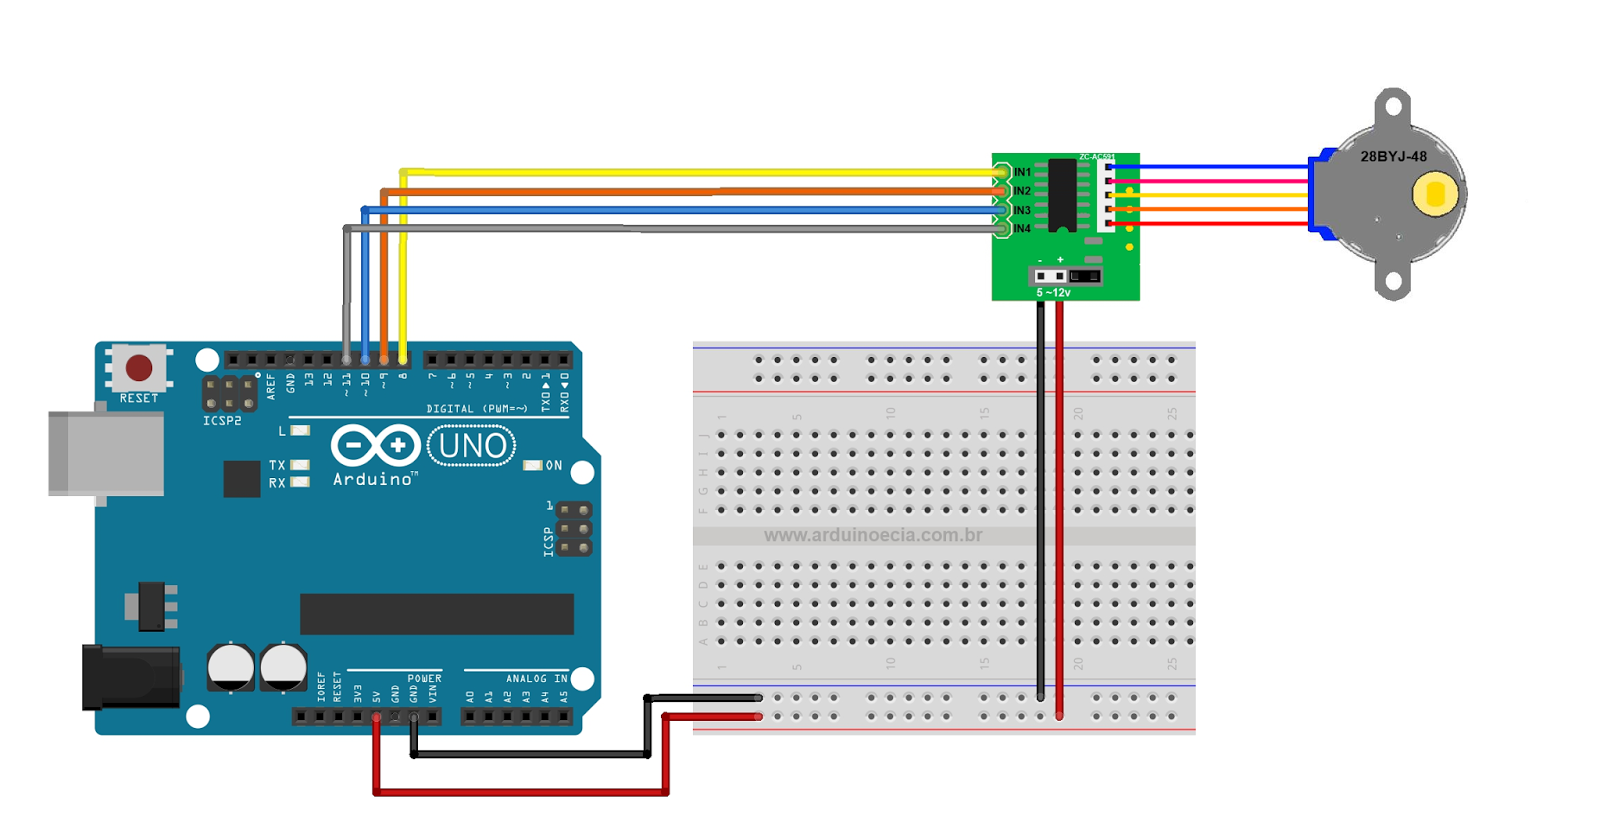 Unipolar Stepper Motor 28 Byj48 Wiring Diagram For Gfci And Light Switch Moreover A To Arduino